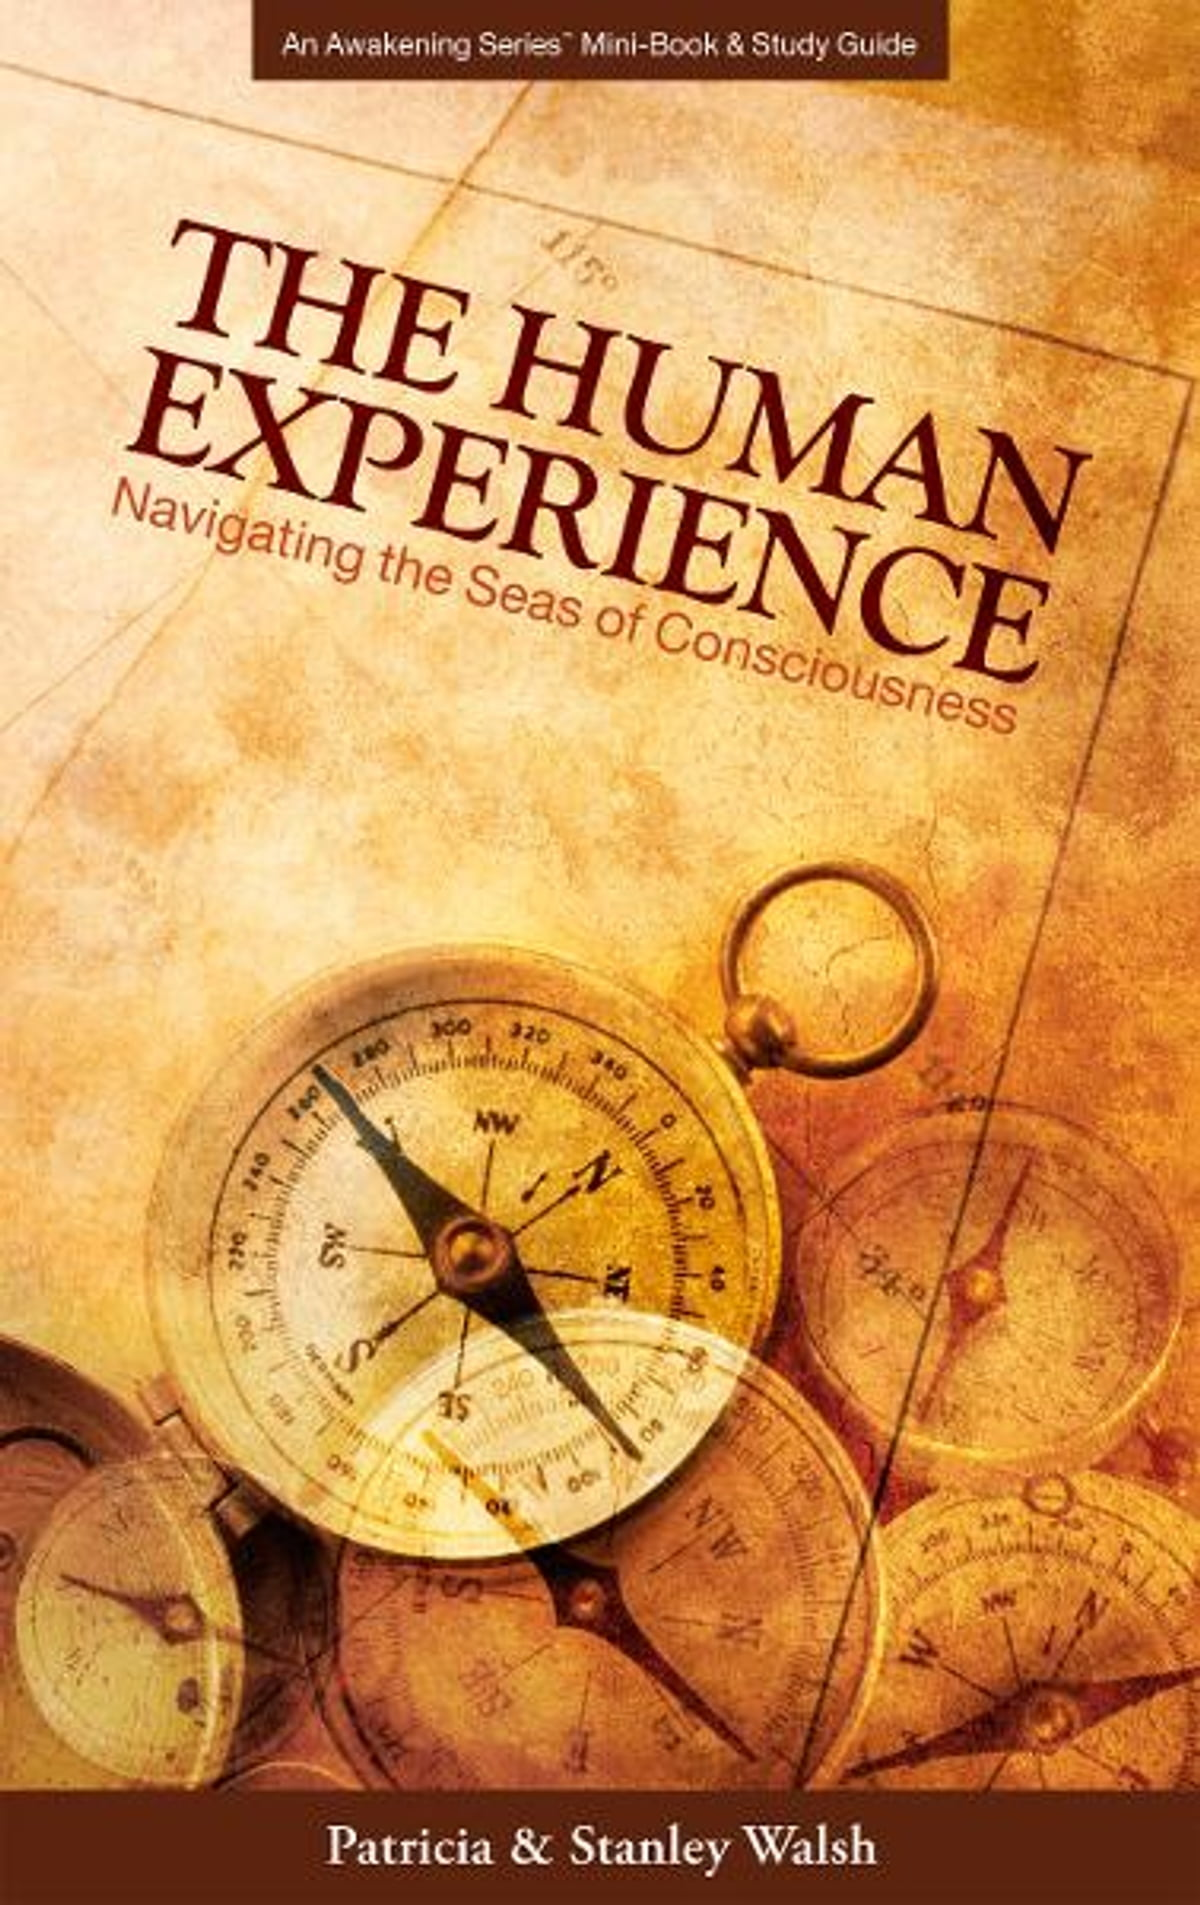 The Human Experience: Navigating The Seas Of Consciousness  With Study  Guide Ebook By Patricia & Stanley Walsh  9781936928248  Kobo